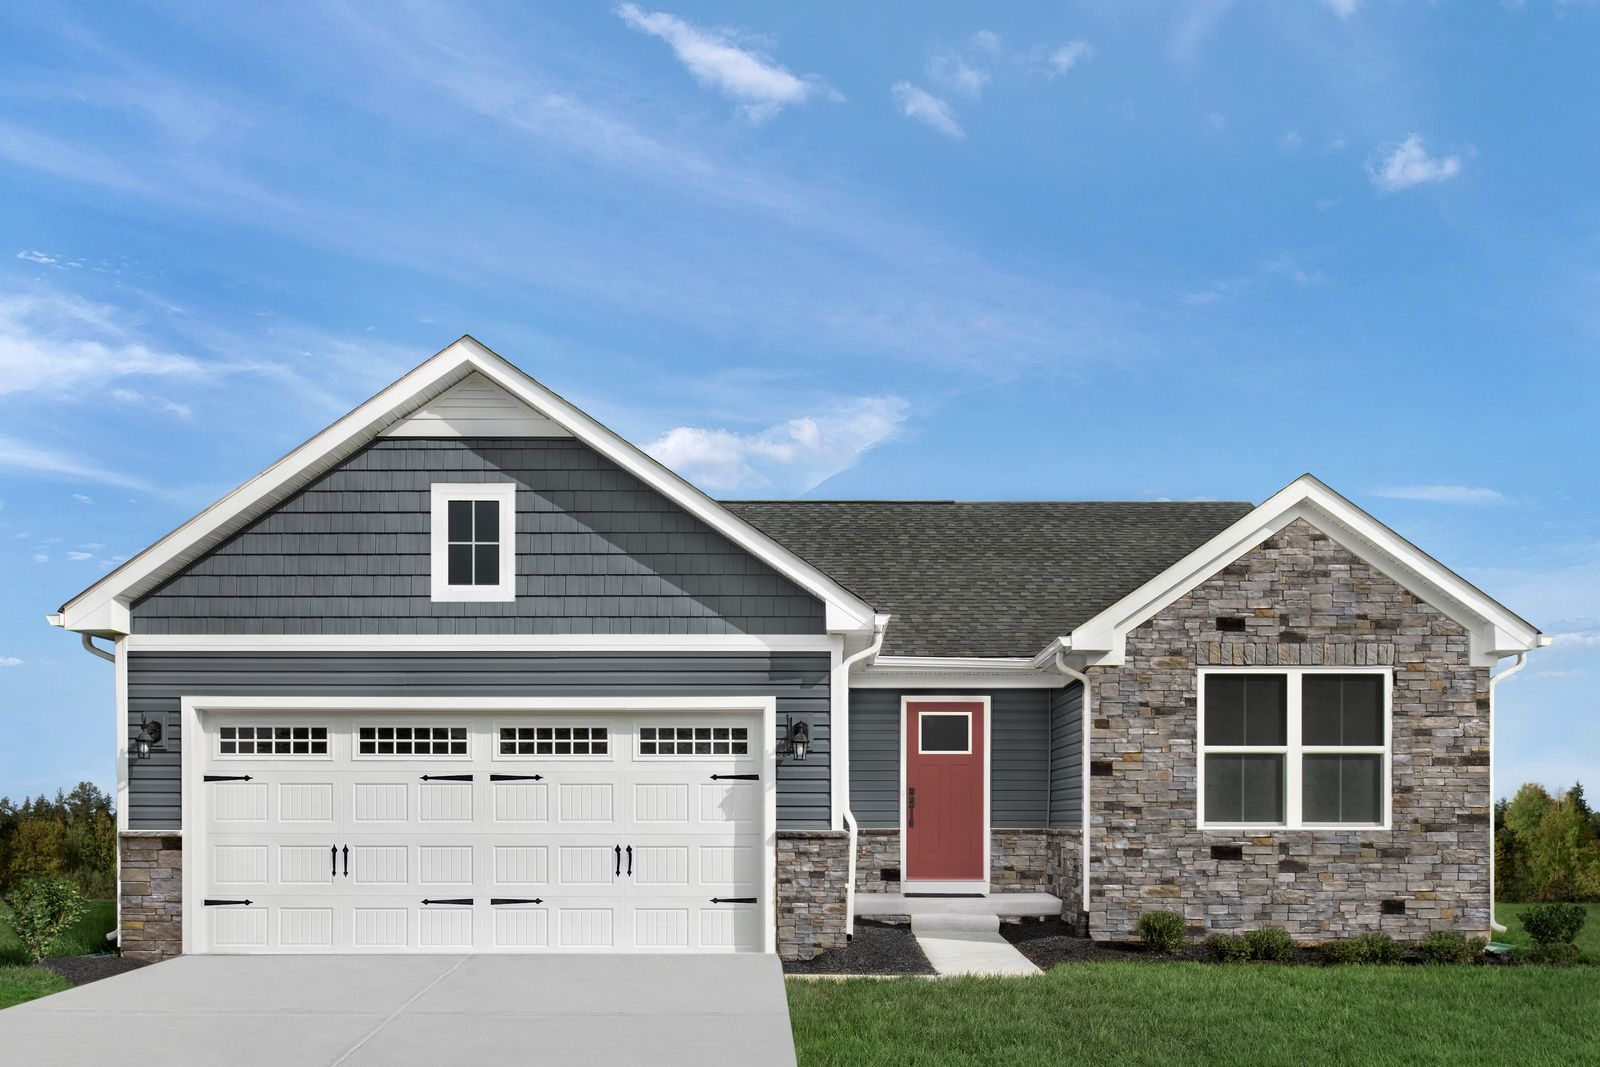 Sunbrook Villas: New Ranch Homes in Lebanon:Located in charming Lebanon, Sunbrook Villas offers the most affordable detached ranch homes on the Northside of Indy.Click here to schedule your tour today.